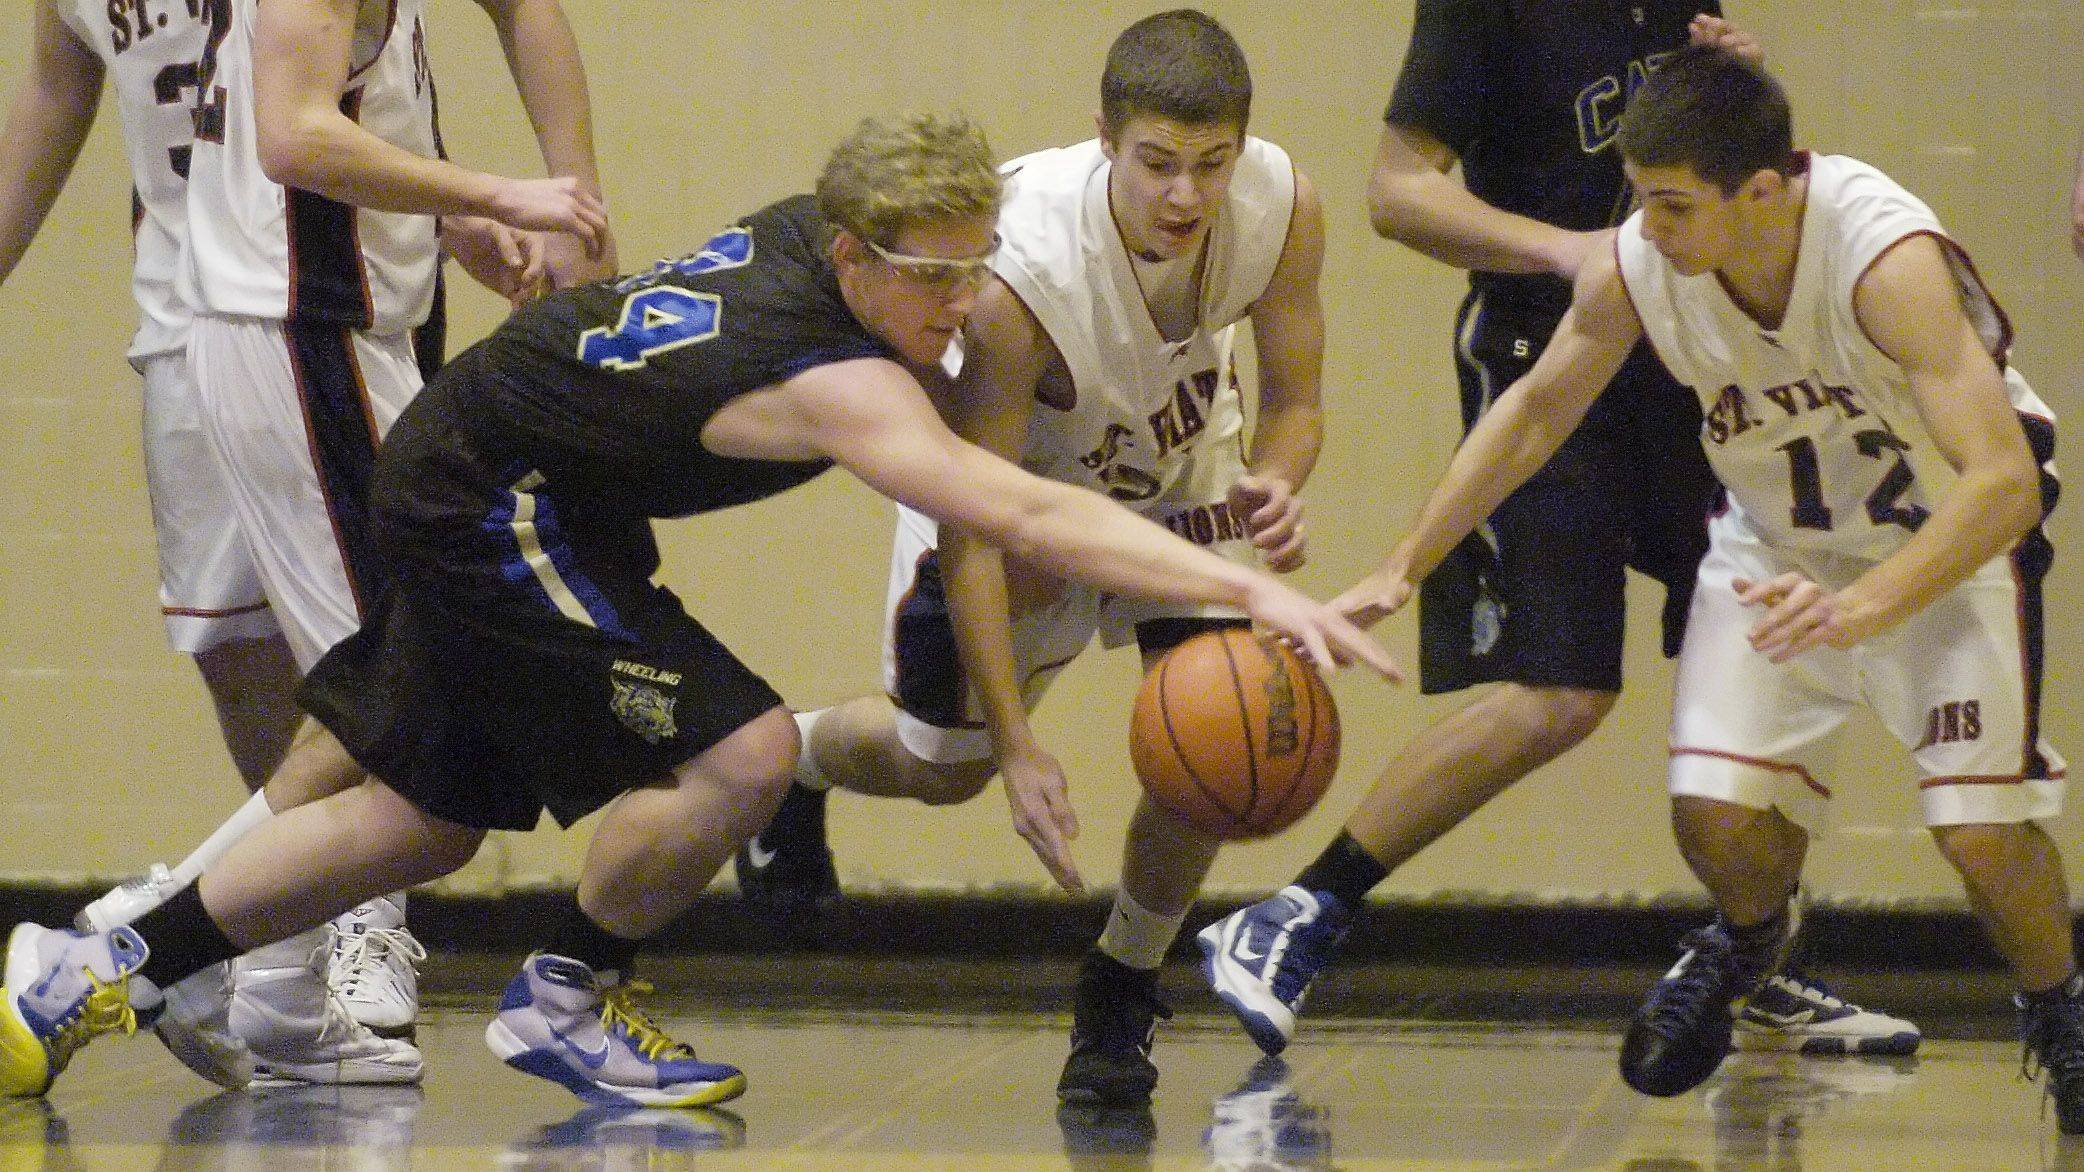 Left to right, Wheeling's Matt Hart and St. Viator's Brian Wilhite and D.J. Morris try to get their hands on a loose ball during the Wheeling Tournament Wednesday.